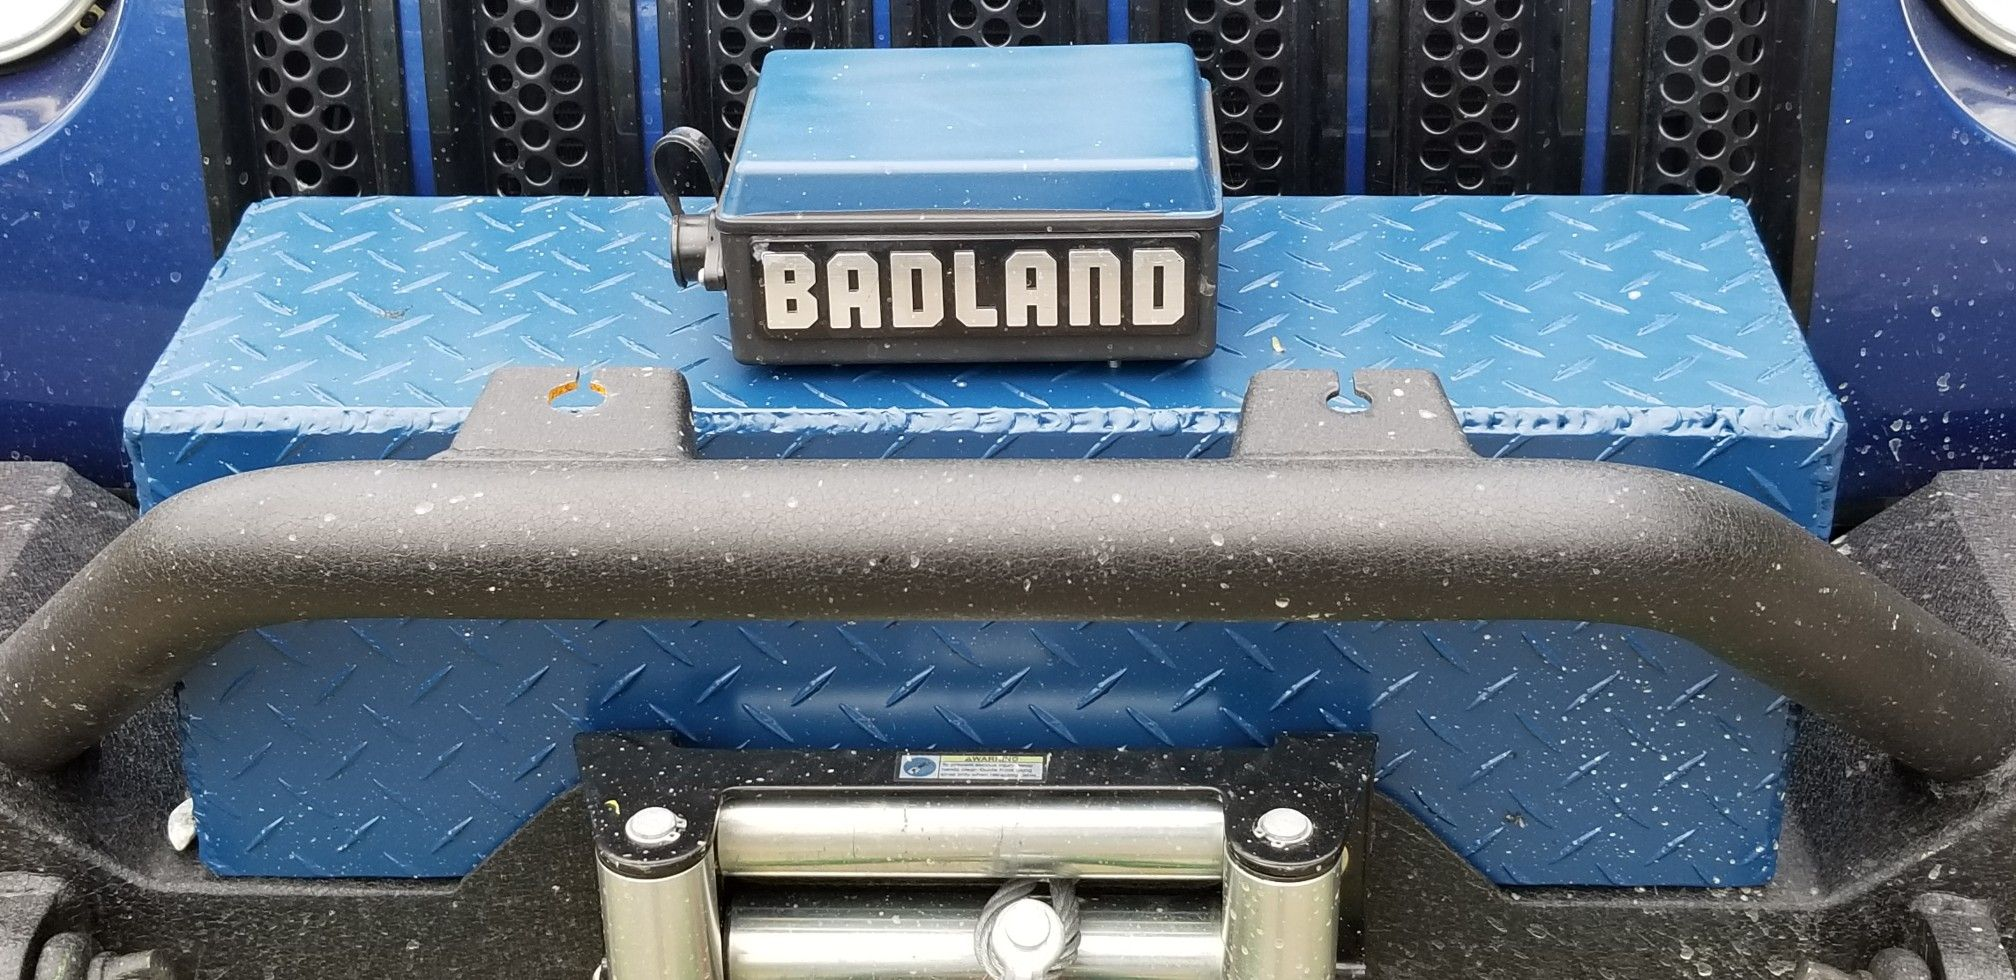 hight resolution of winch cover for the badlands winch